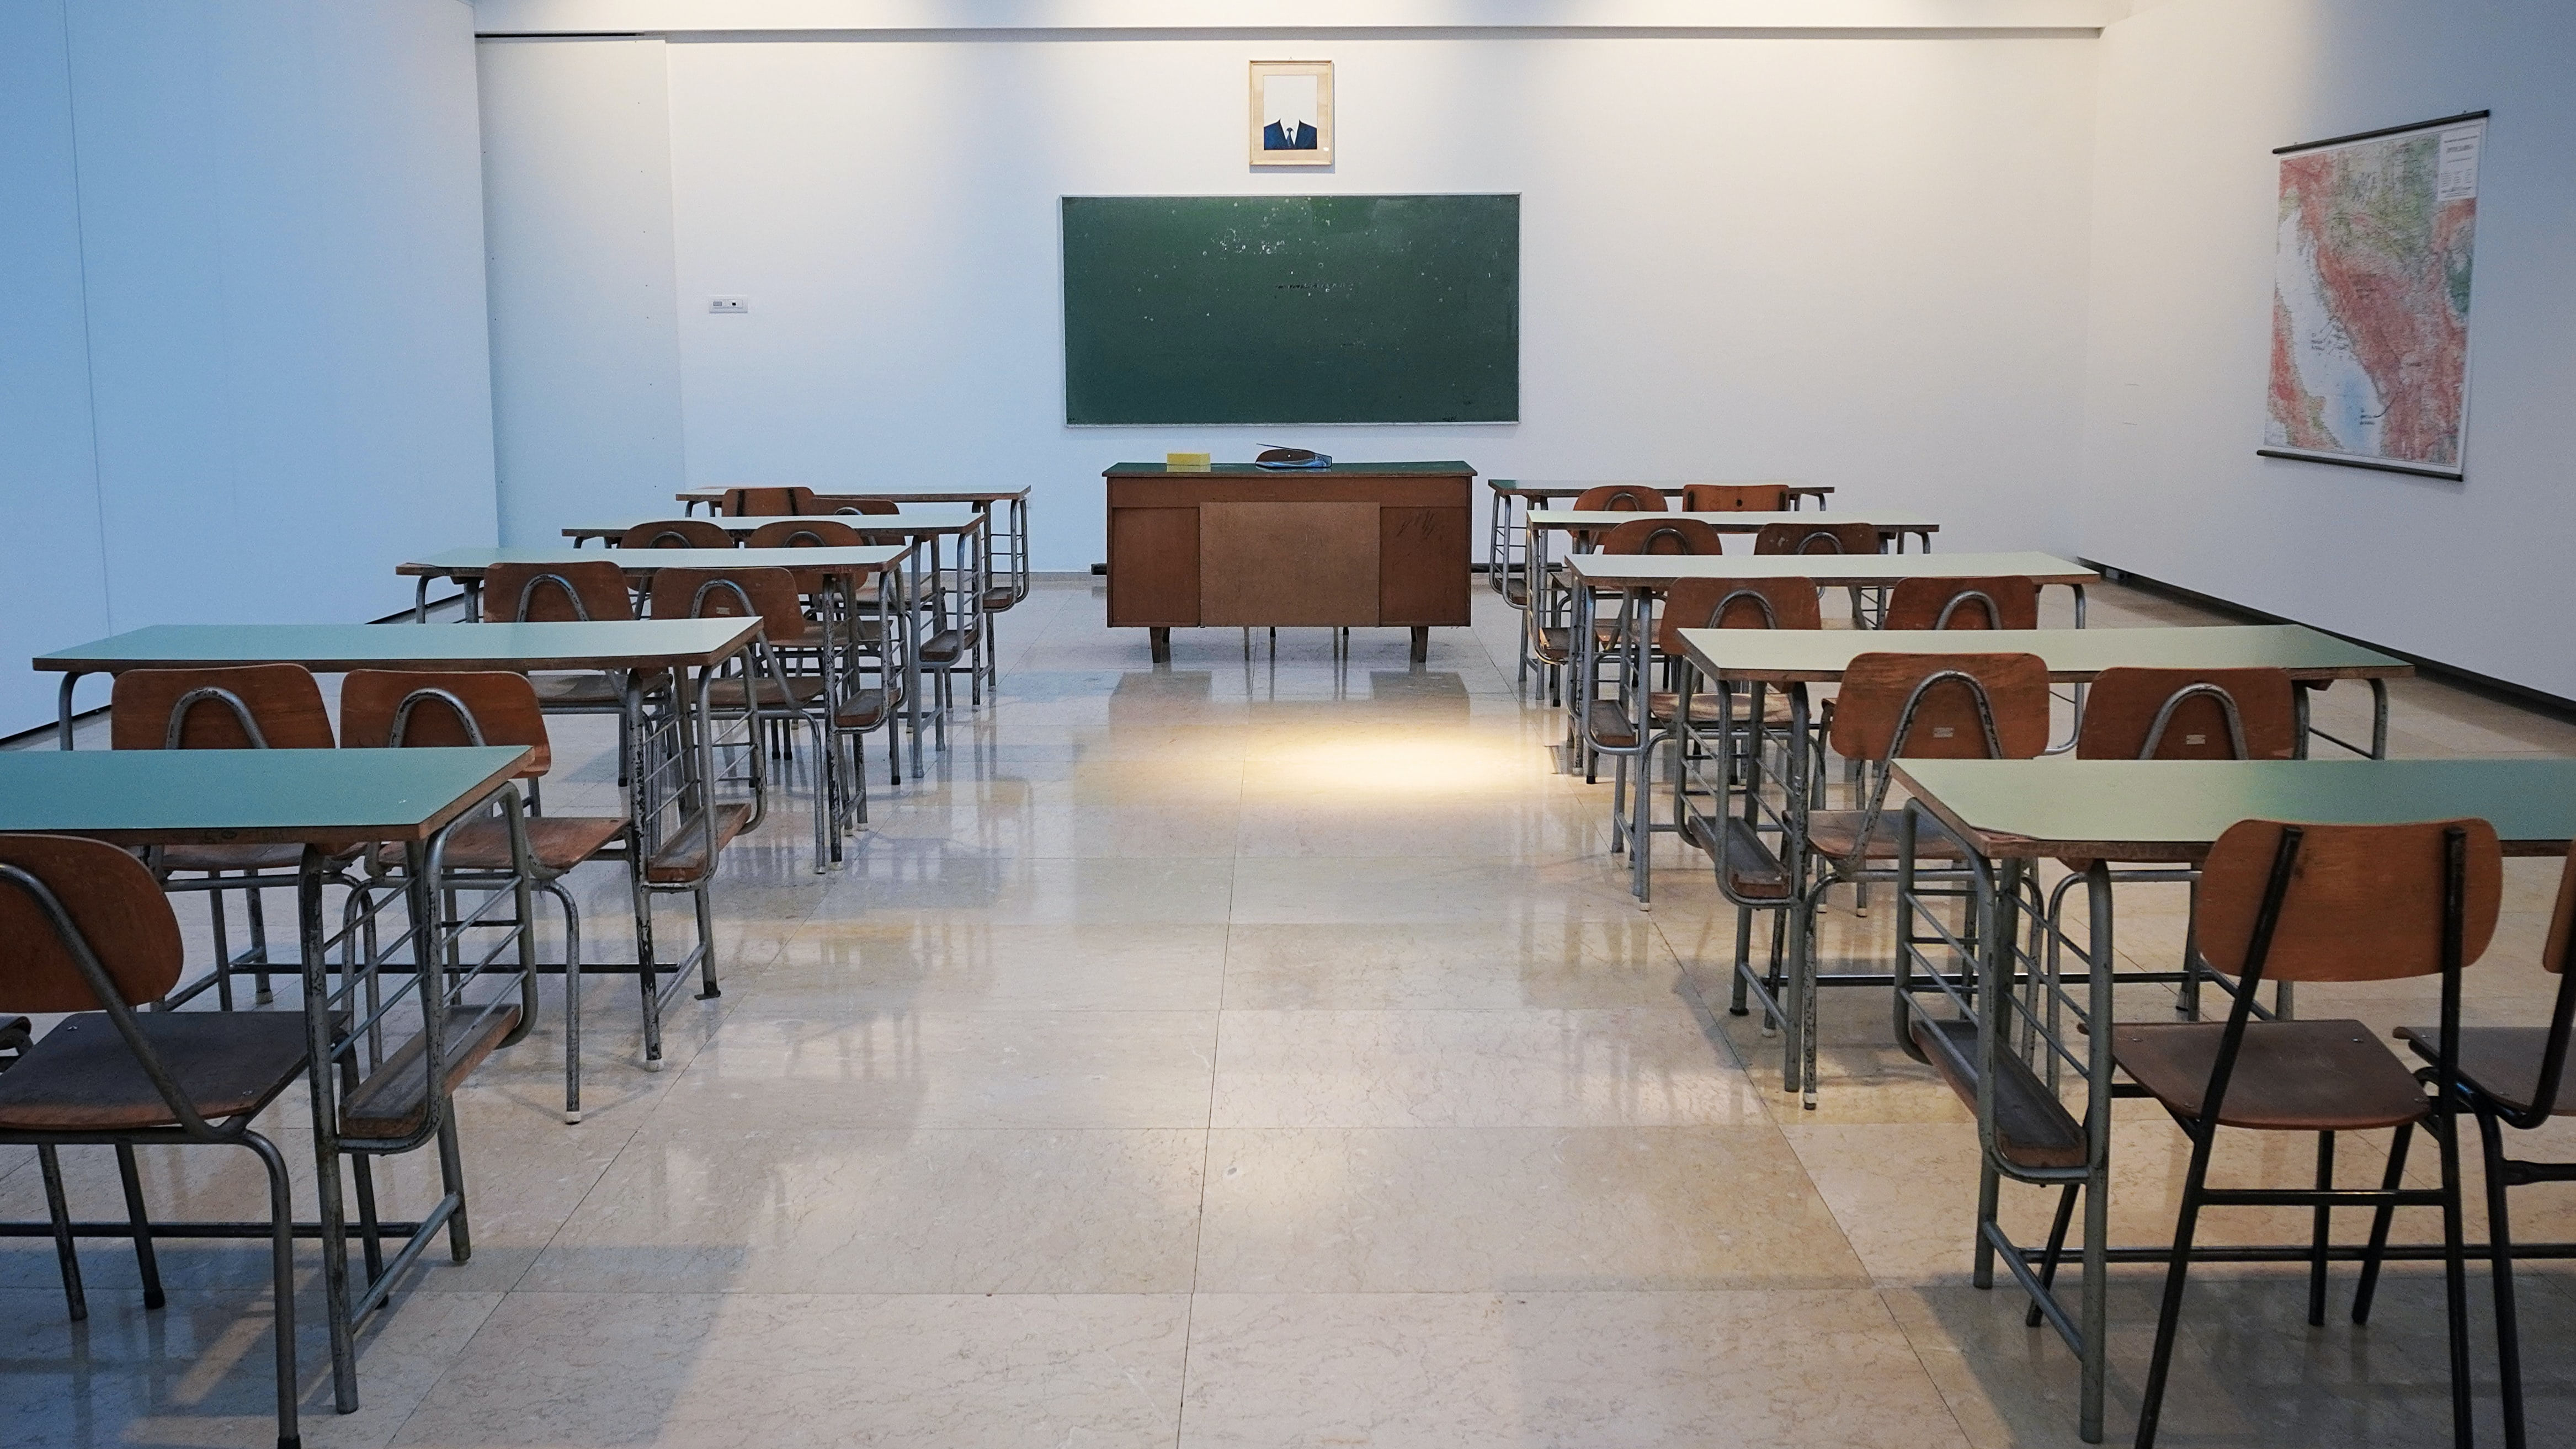 Image showing an empty classroom